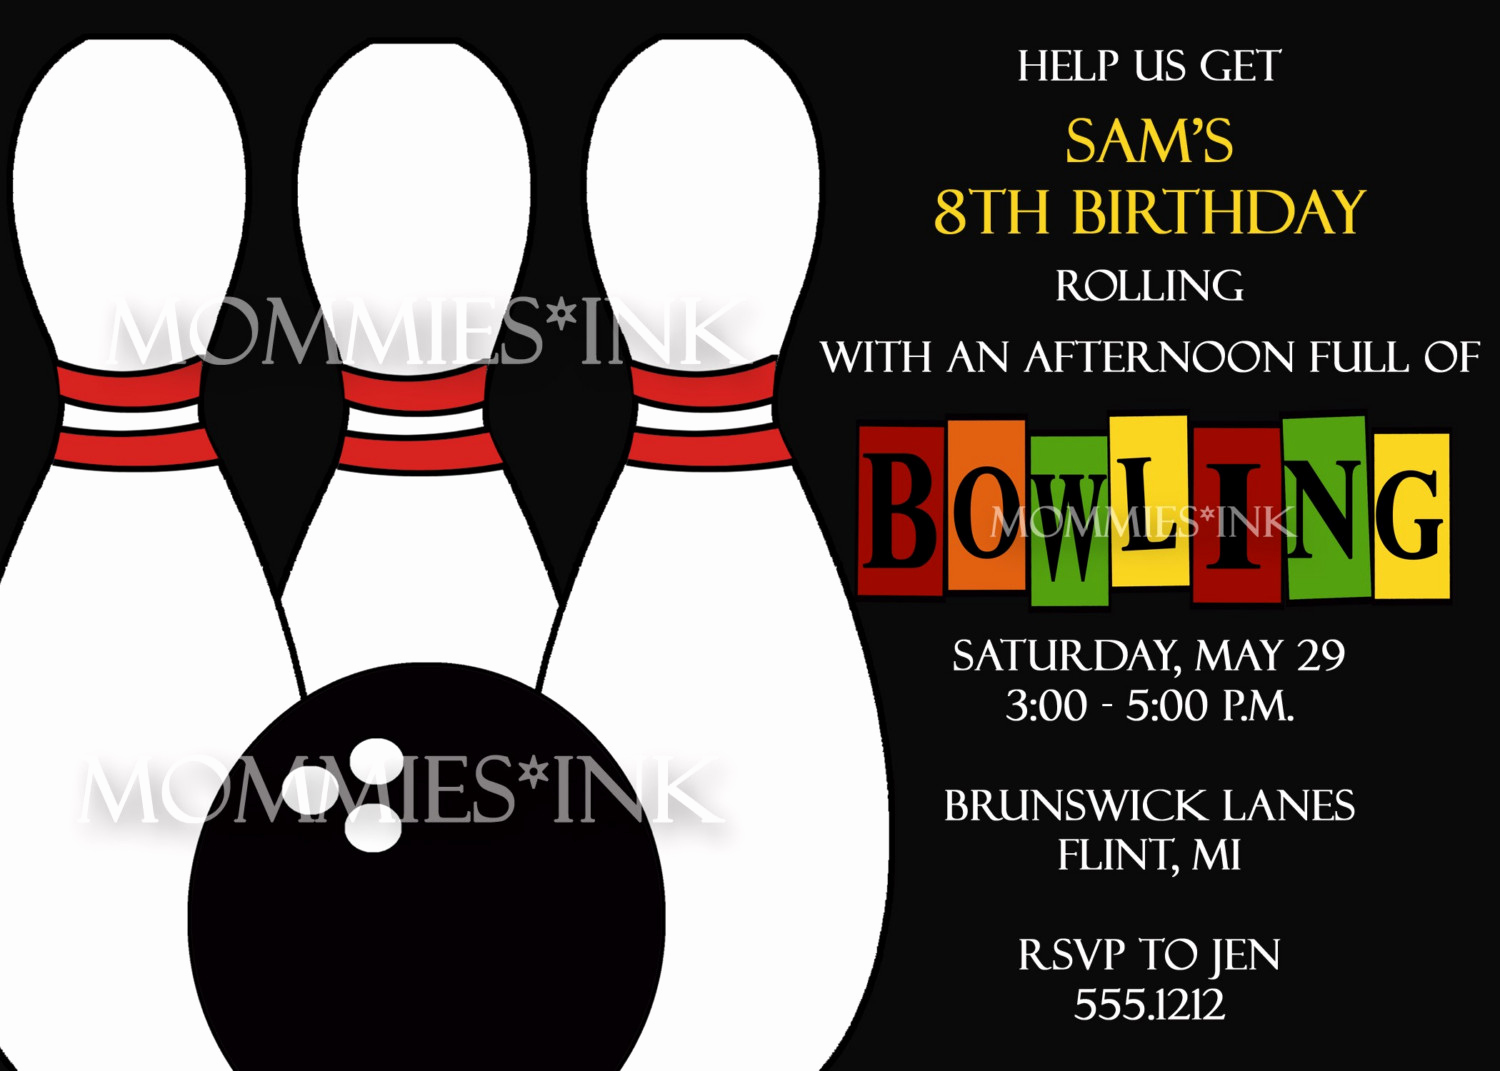 Bowling Party Invitation Templates Free Fresh Bowling Invitation Templates